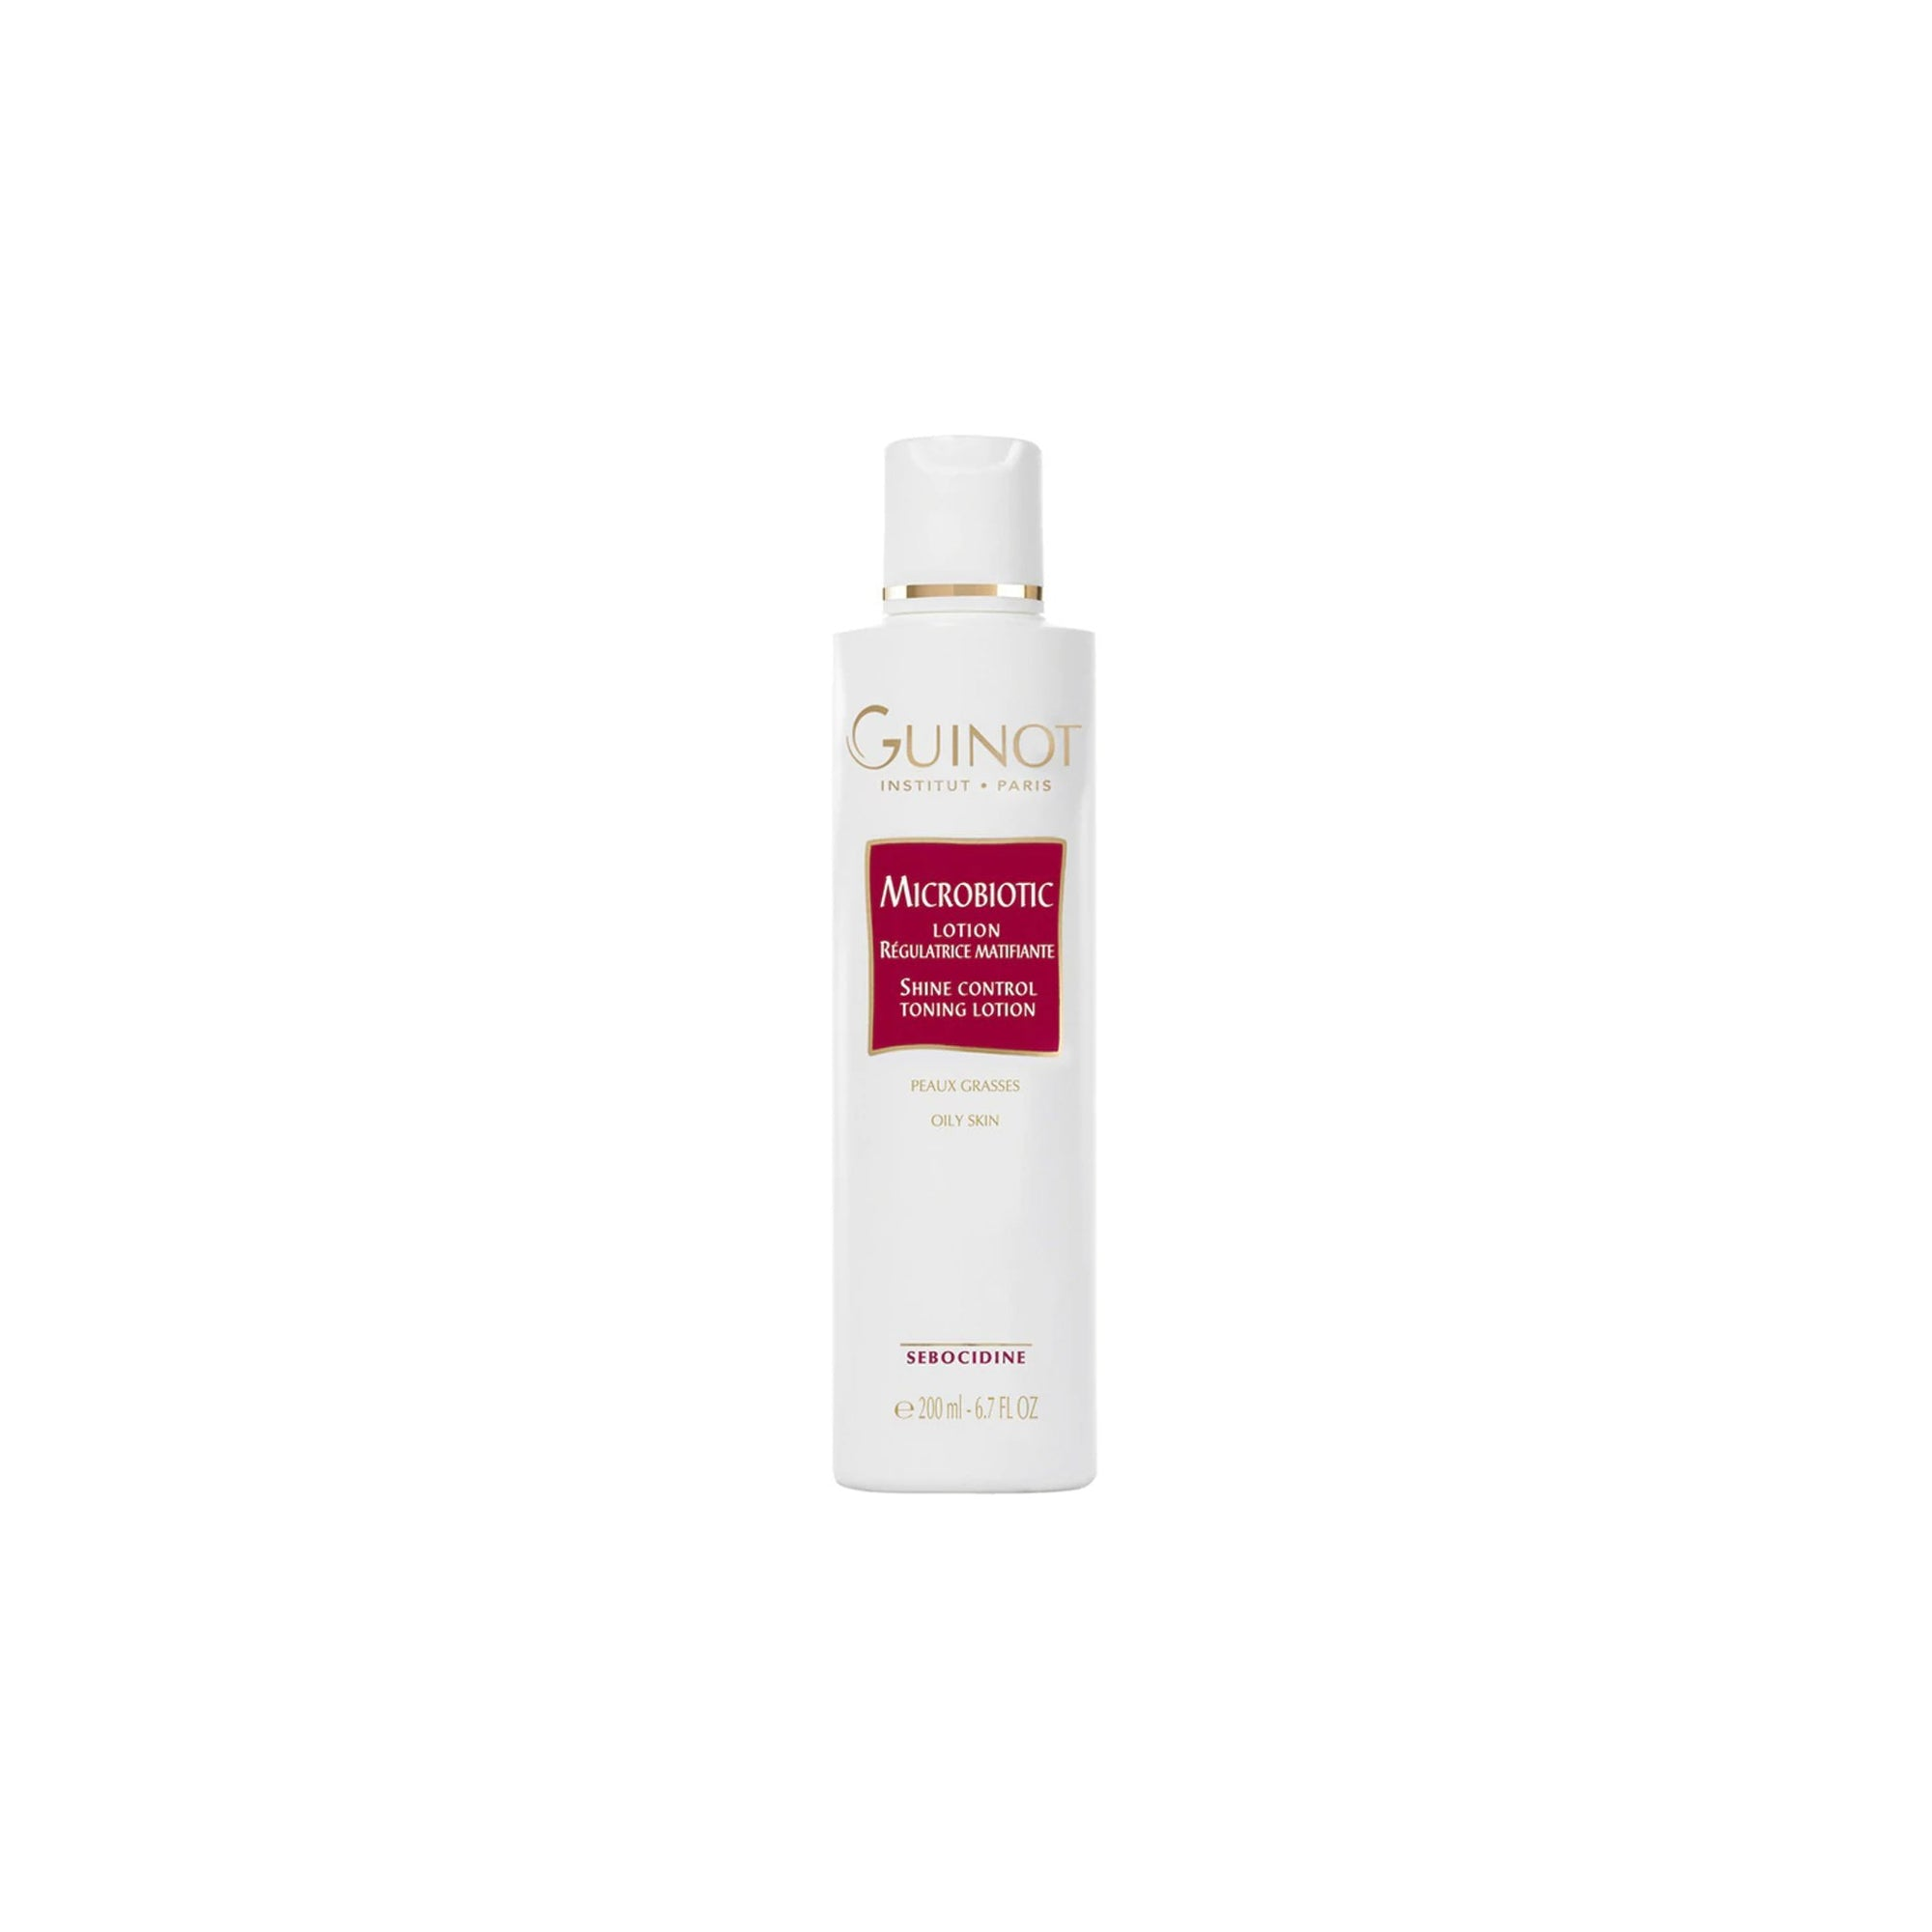 Guinot Microbiotic Toning Lotion 200ml